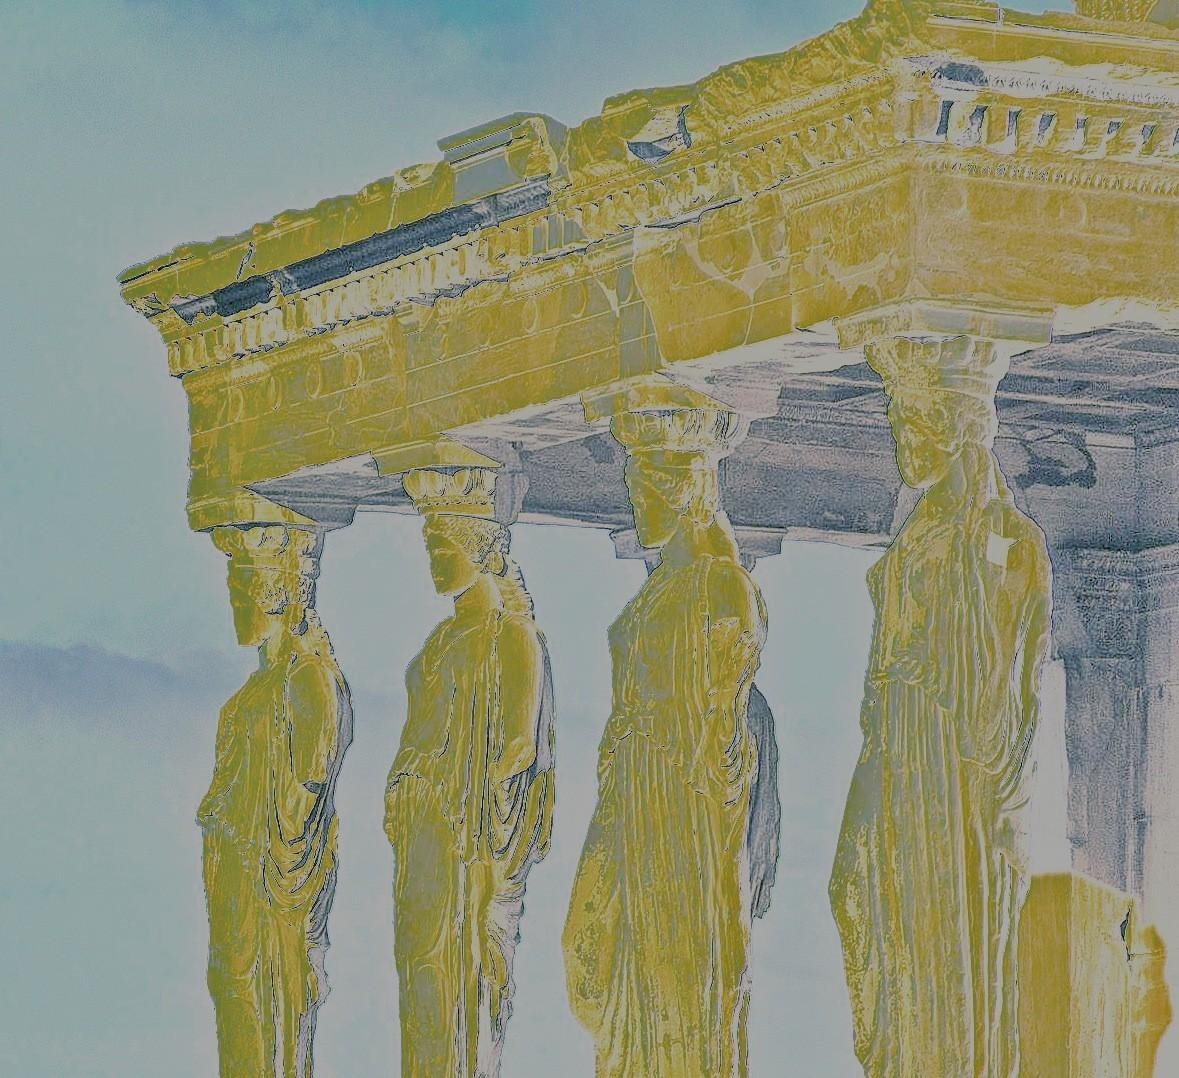 2013 09 Acropolis5 2 - A.P. Astra - Screening - mixed media